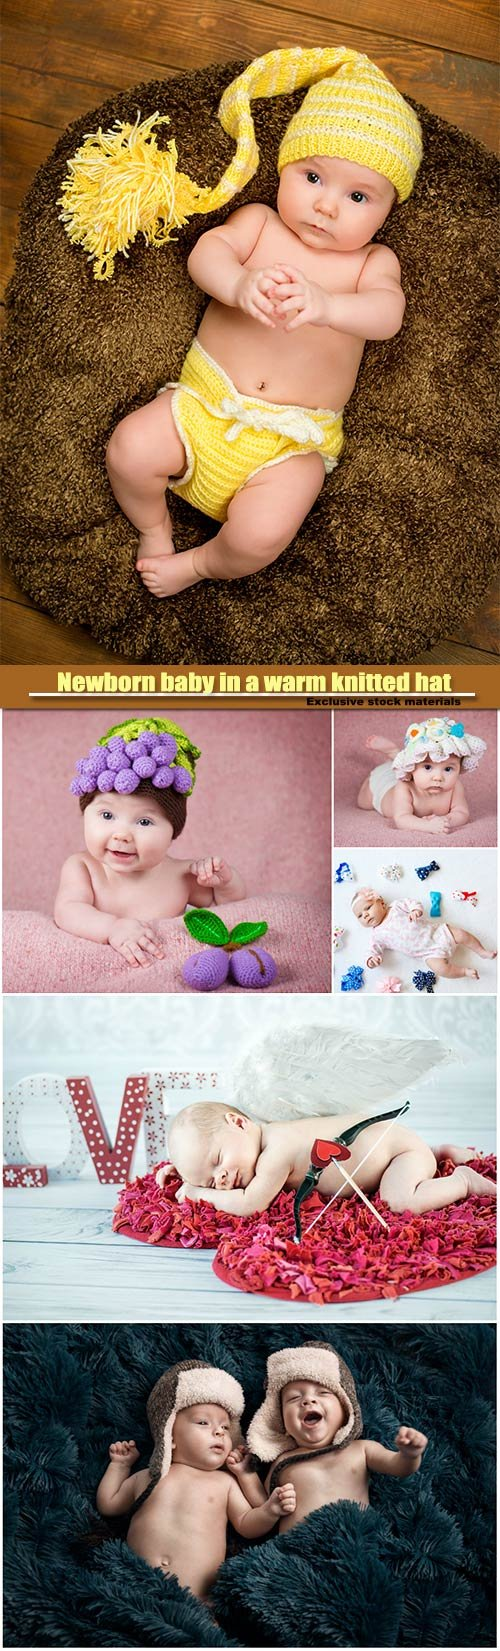 Newborn baby in a warm knitted hat, family, new life, beginning concept